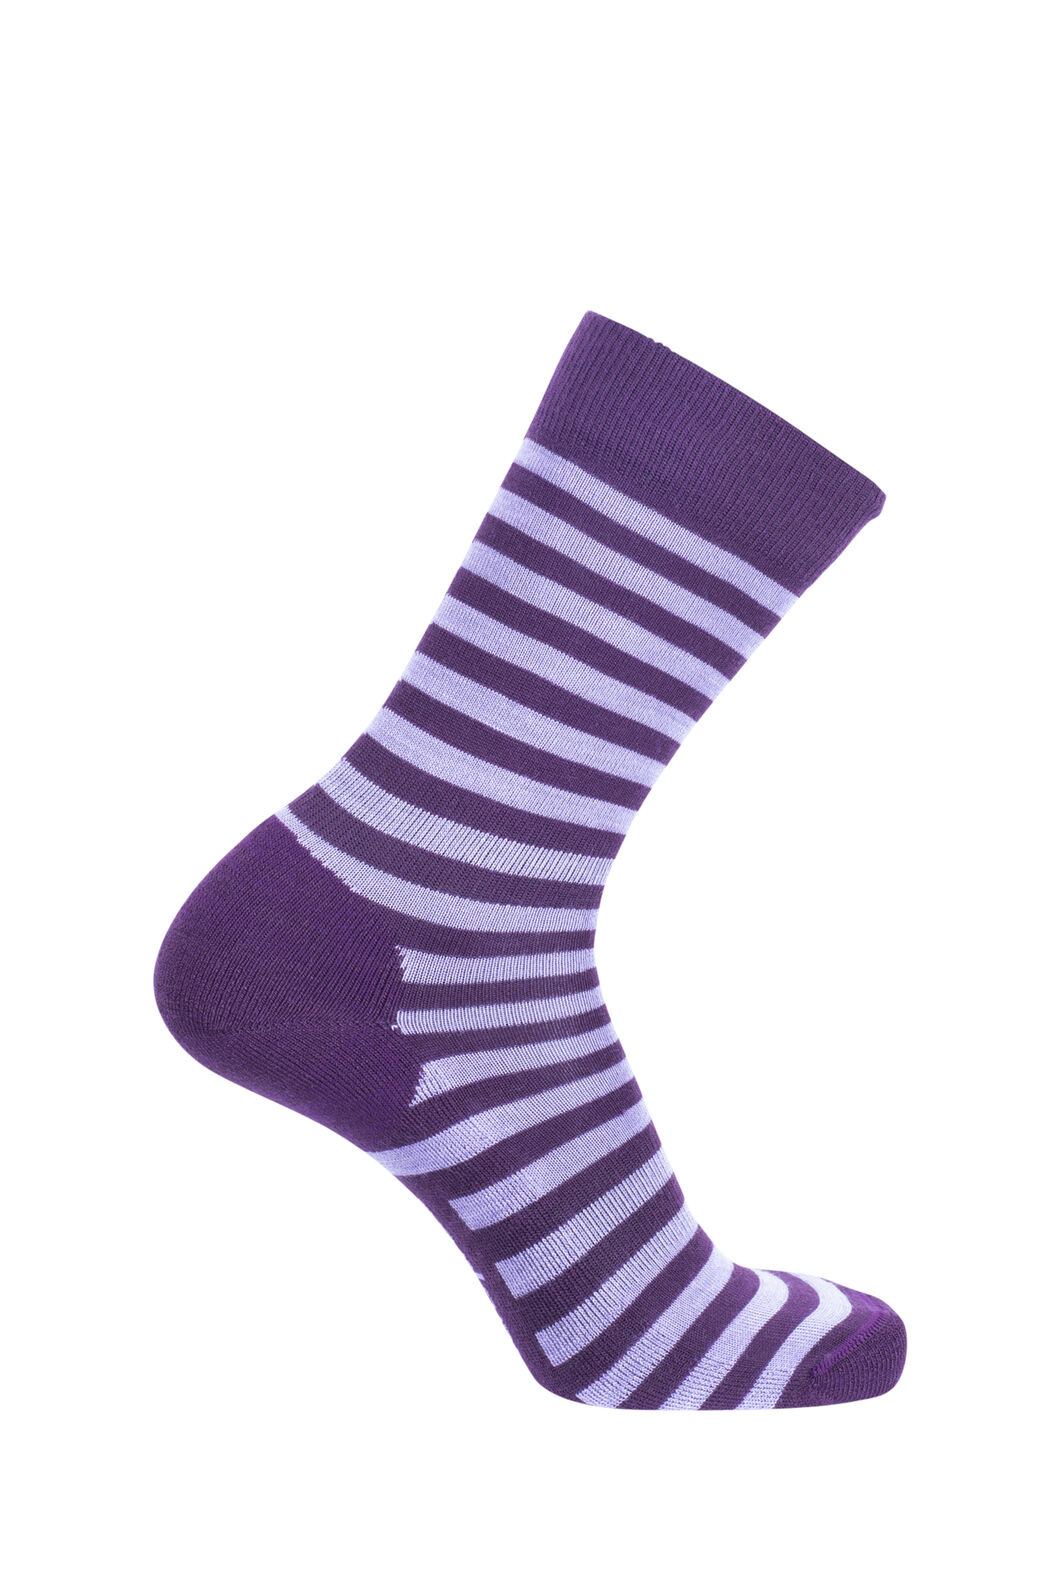 Macpac Merino Blend Footprint Socks, Blackberry Wine Stripe, hi-res